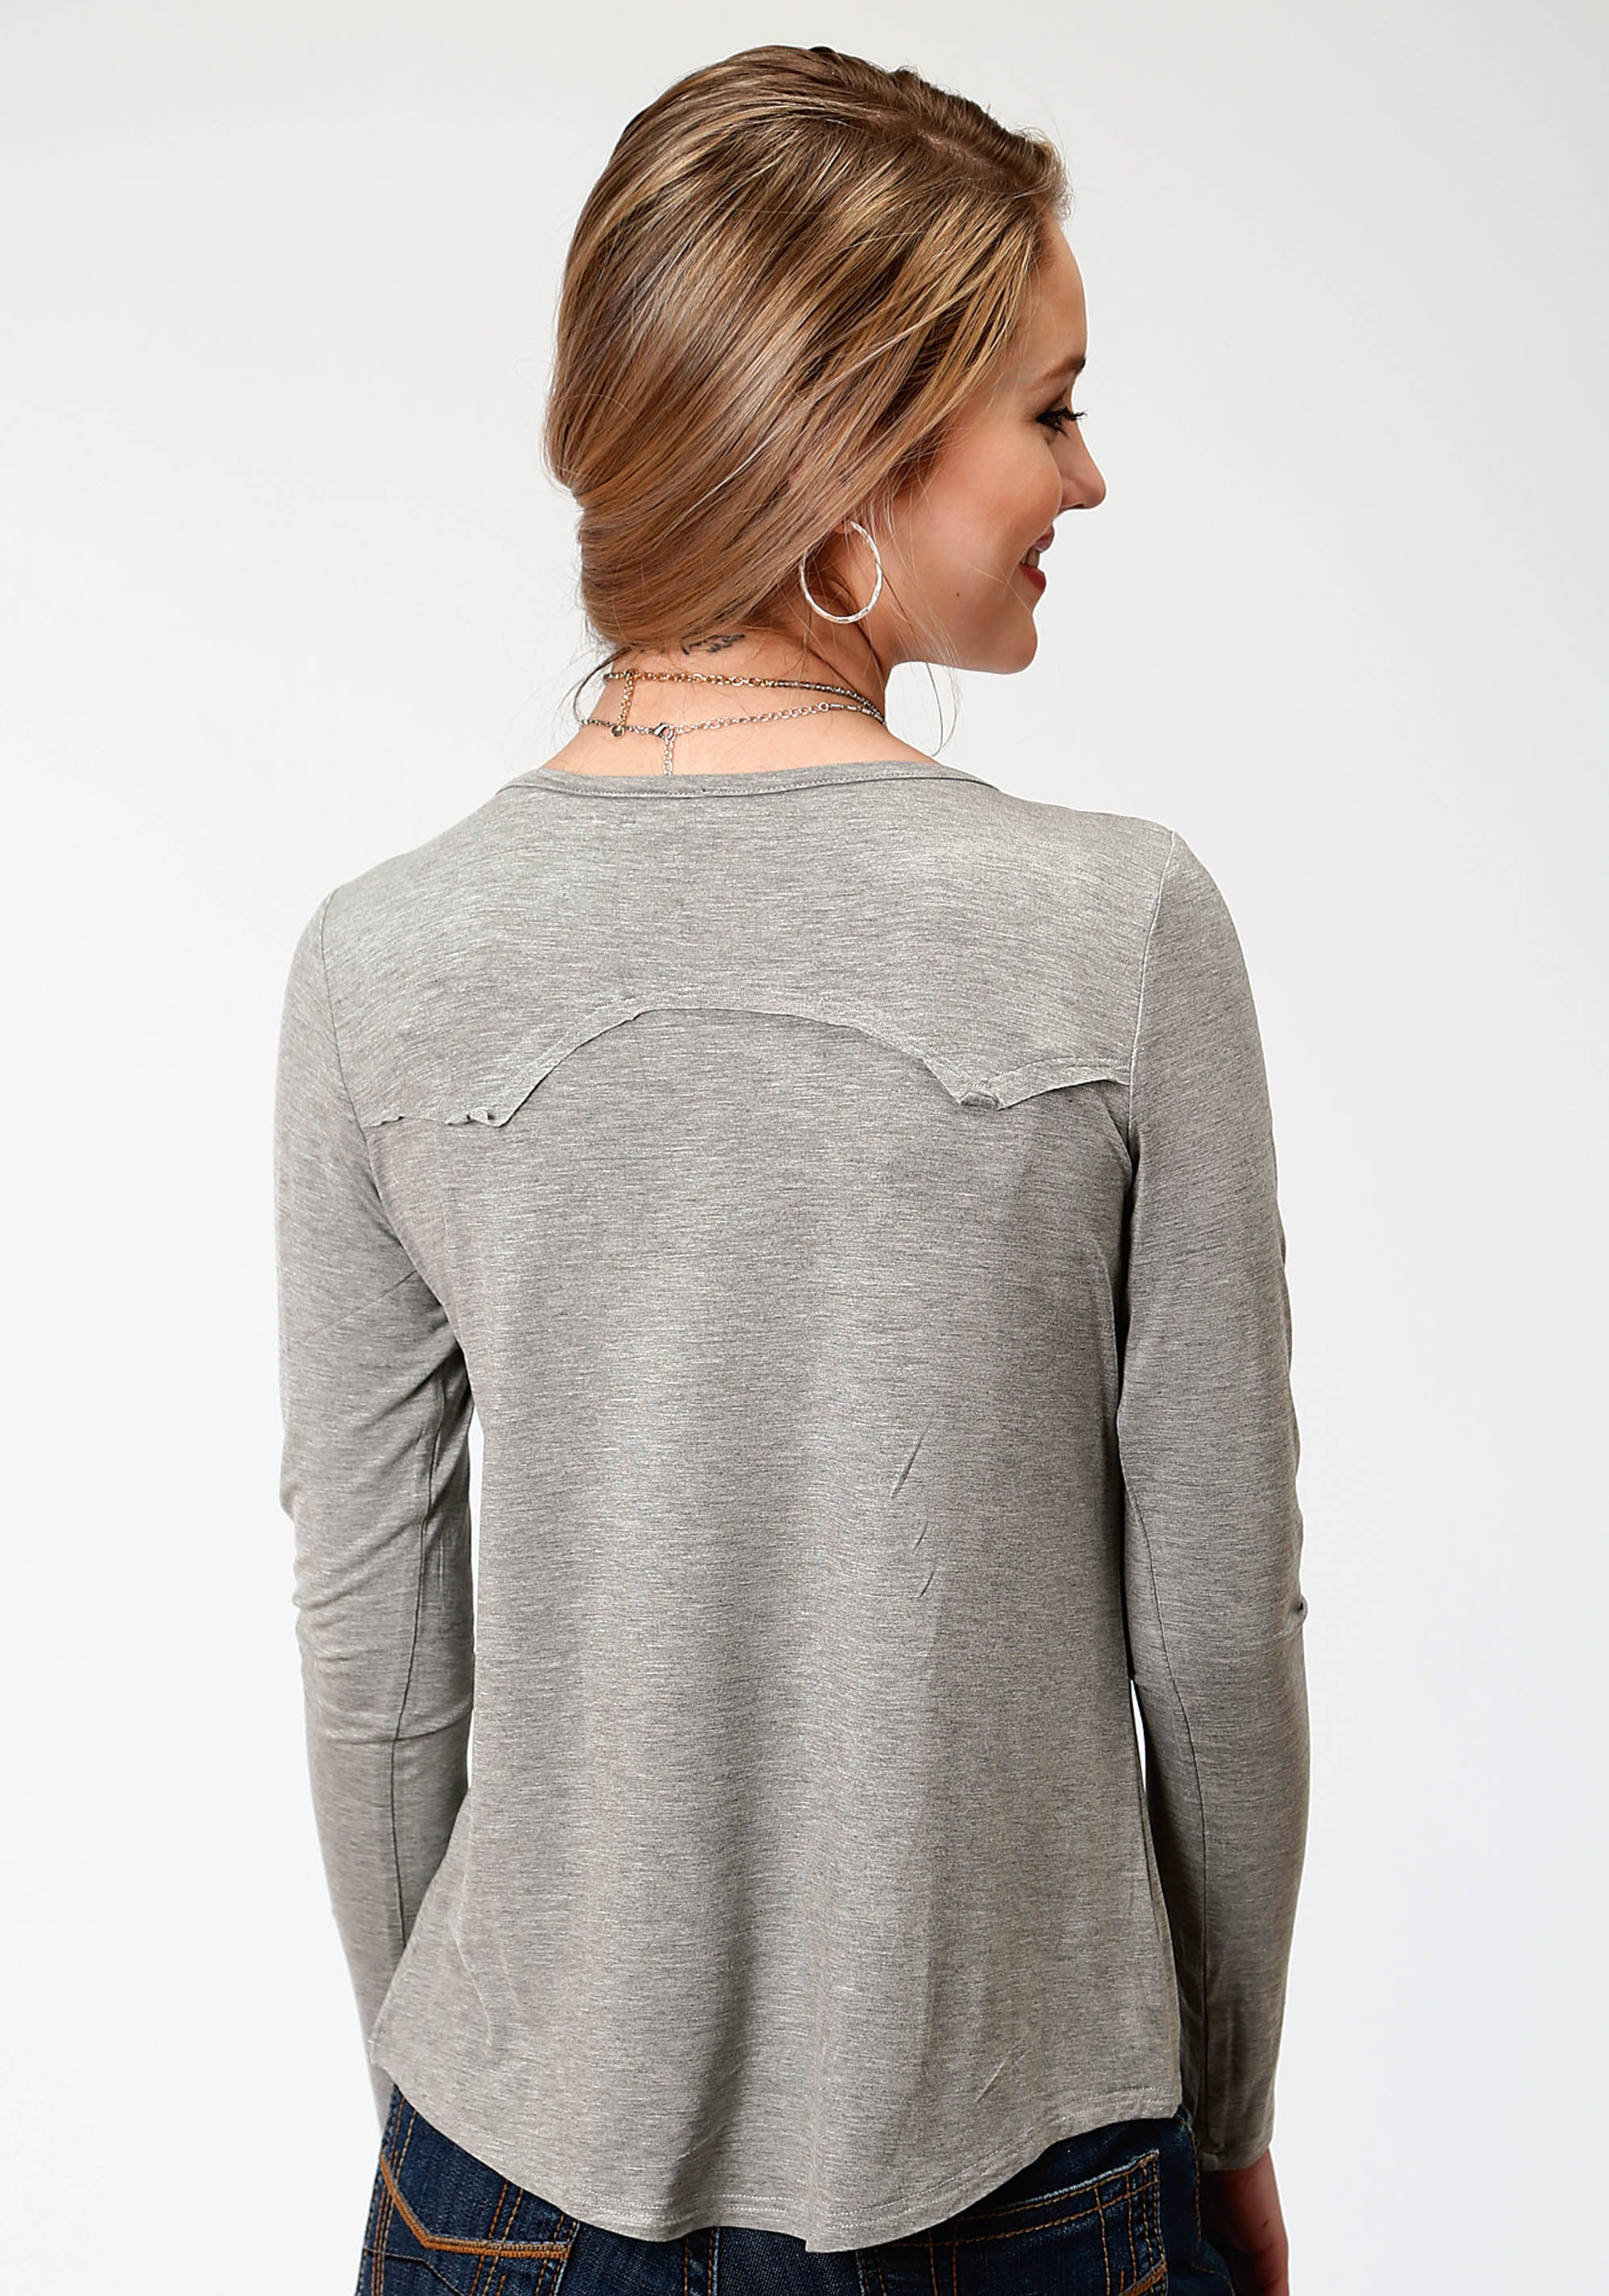 ROPER WOMENS GREY 3675 POLY RAYON JERSEY LS TEE FIVE STAR- WINTER II LONG SLEEVE